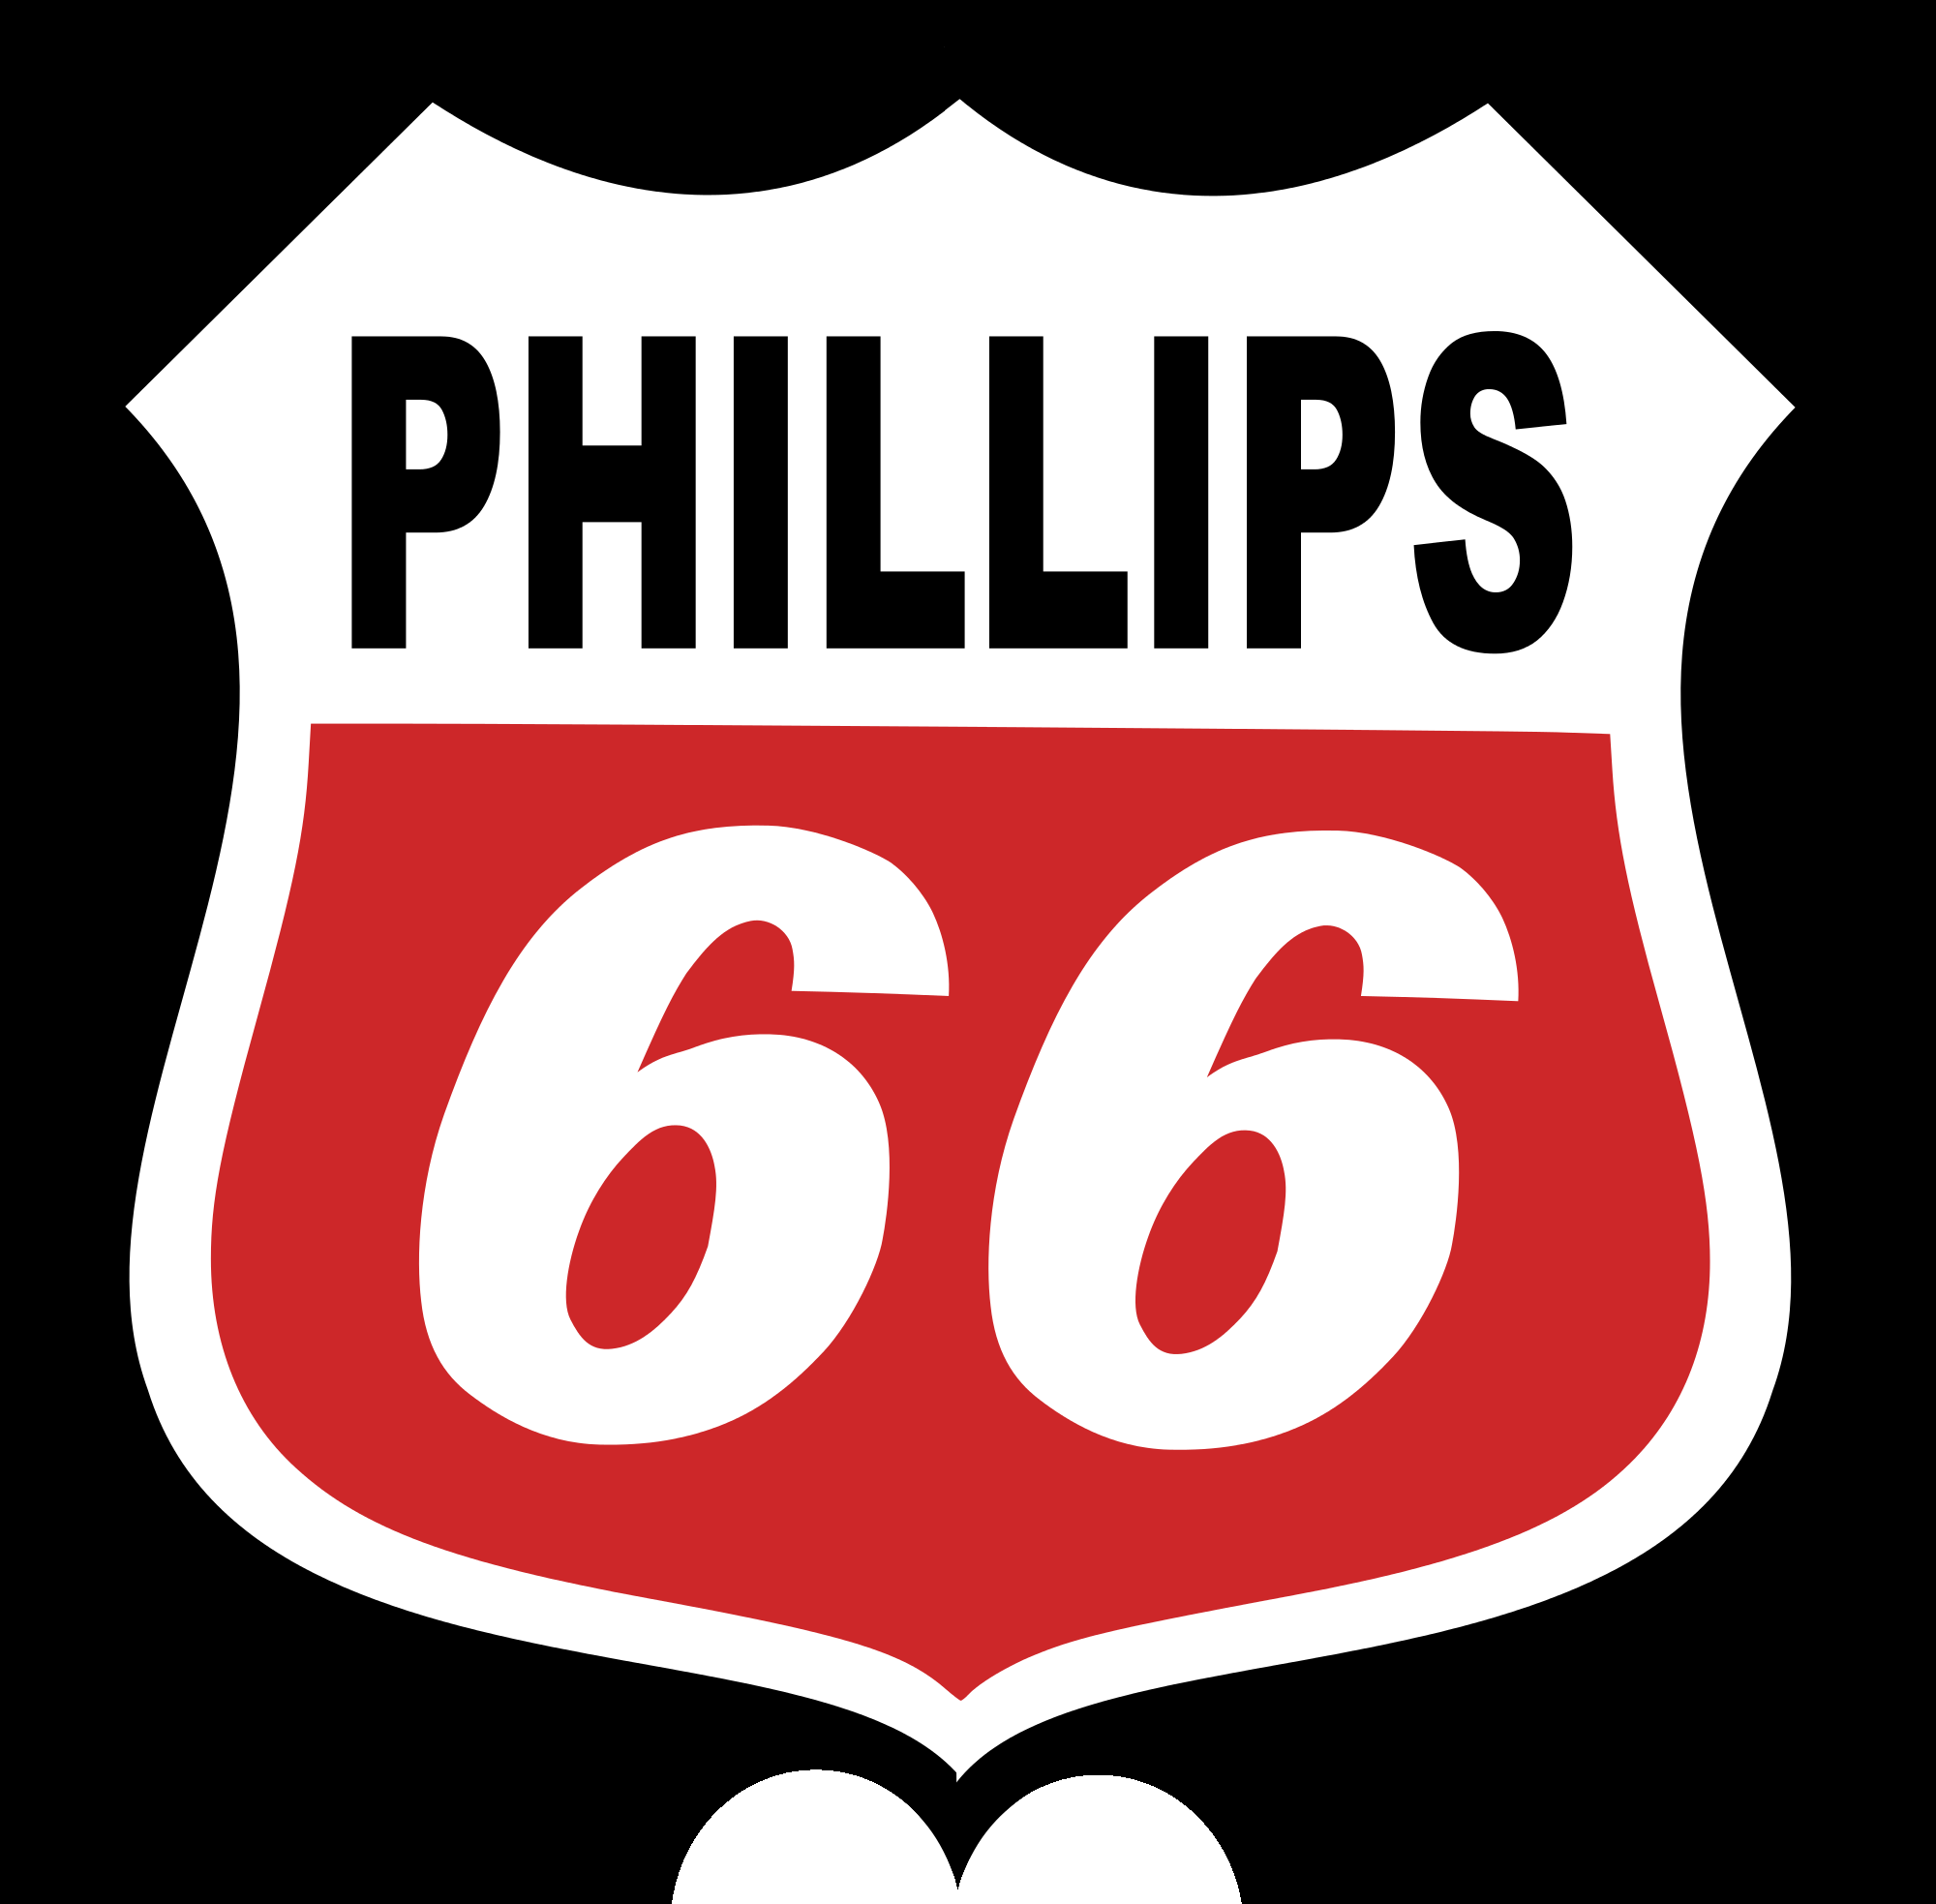 Phillips 66 Hector Oils 680 Cross Reference